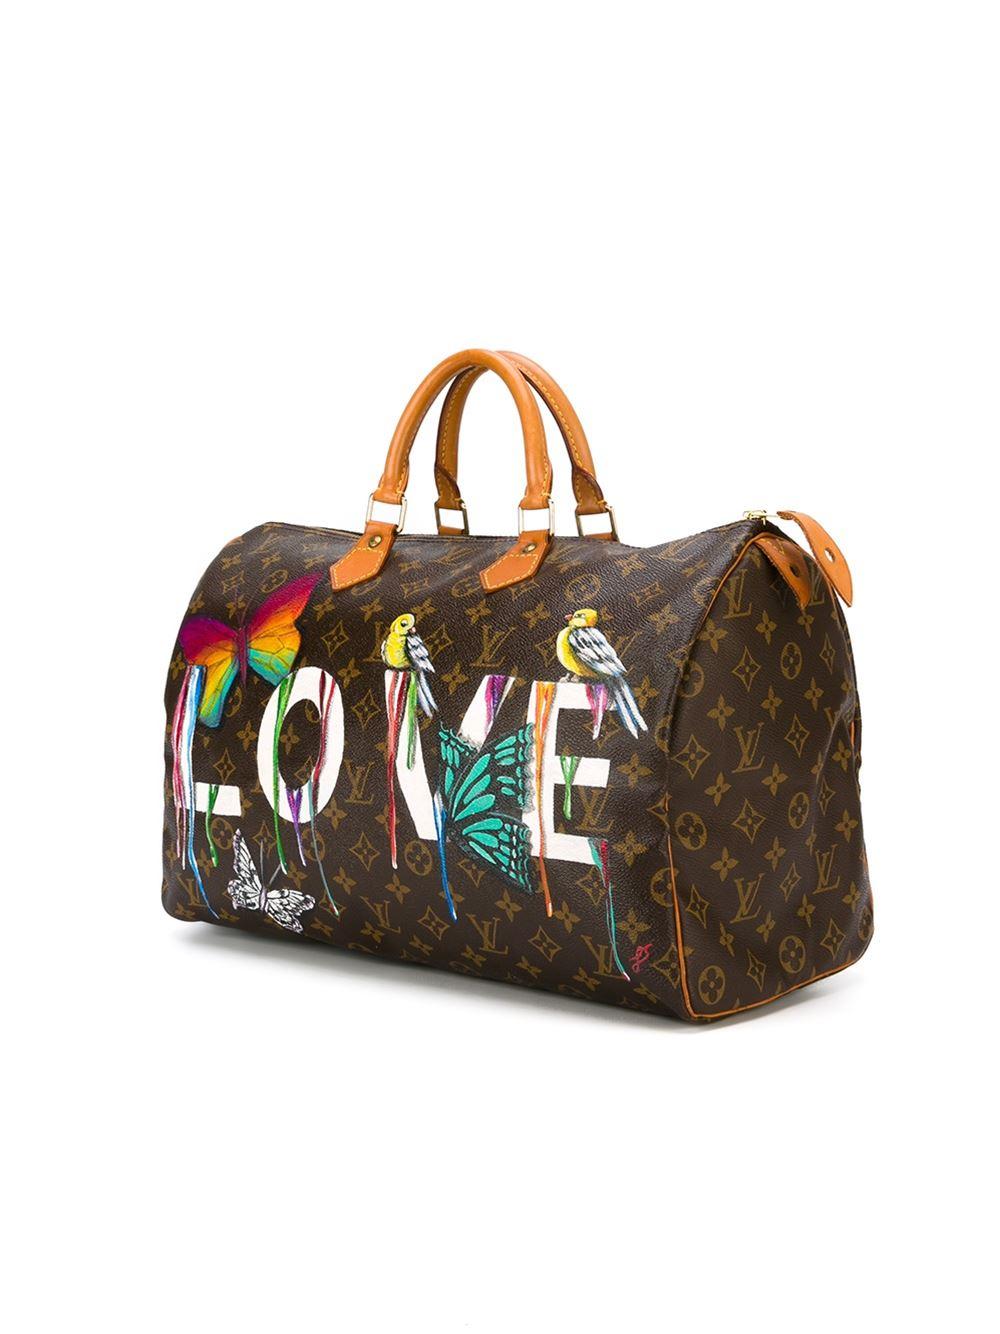 e1182778fa95 Customised Louis Vuitton Vintage  Dripping Love  Bag at 1stdibs